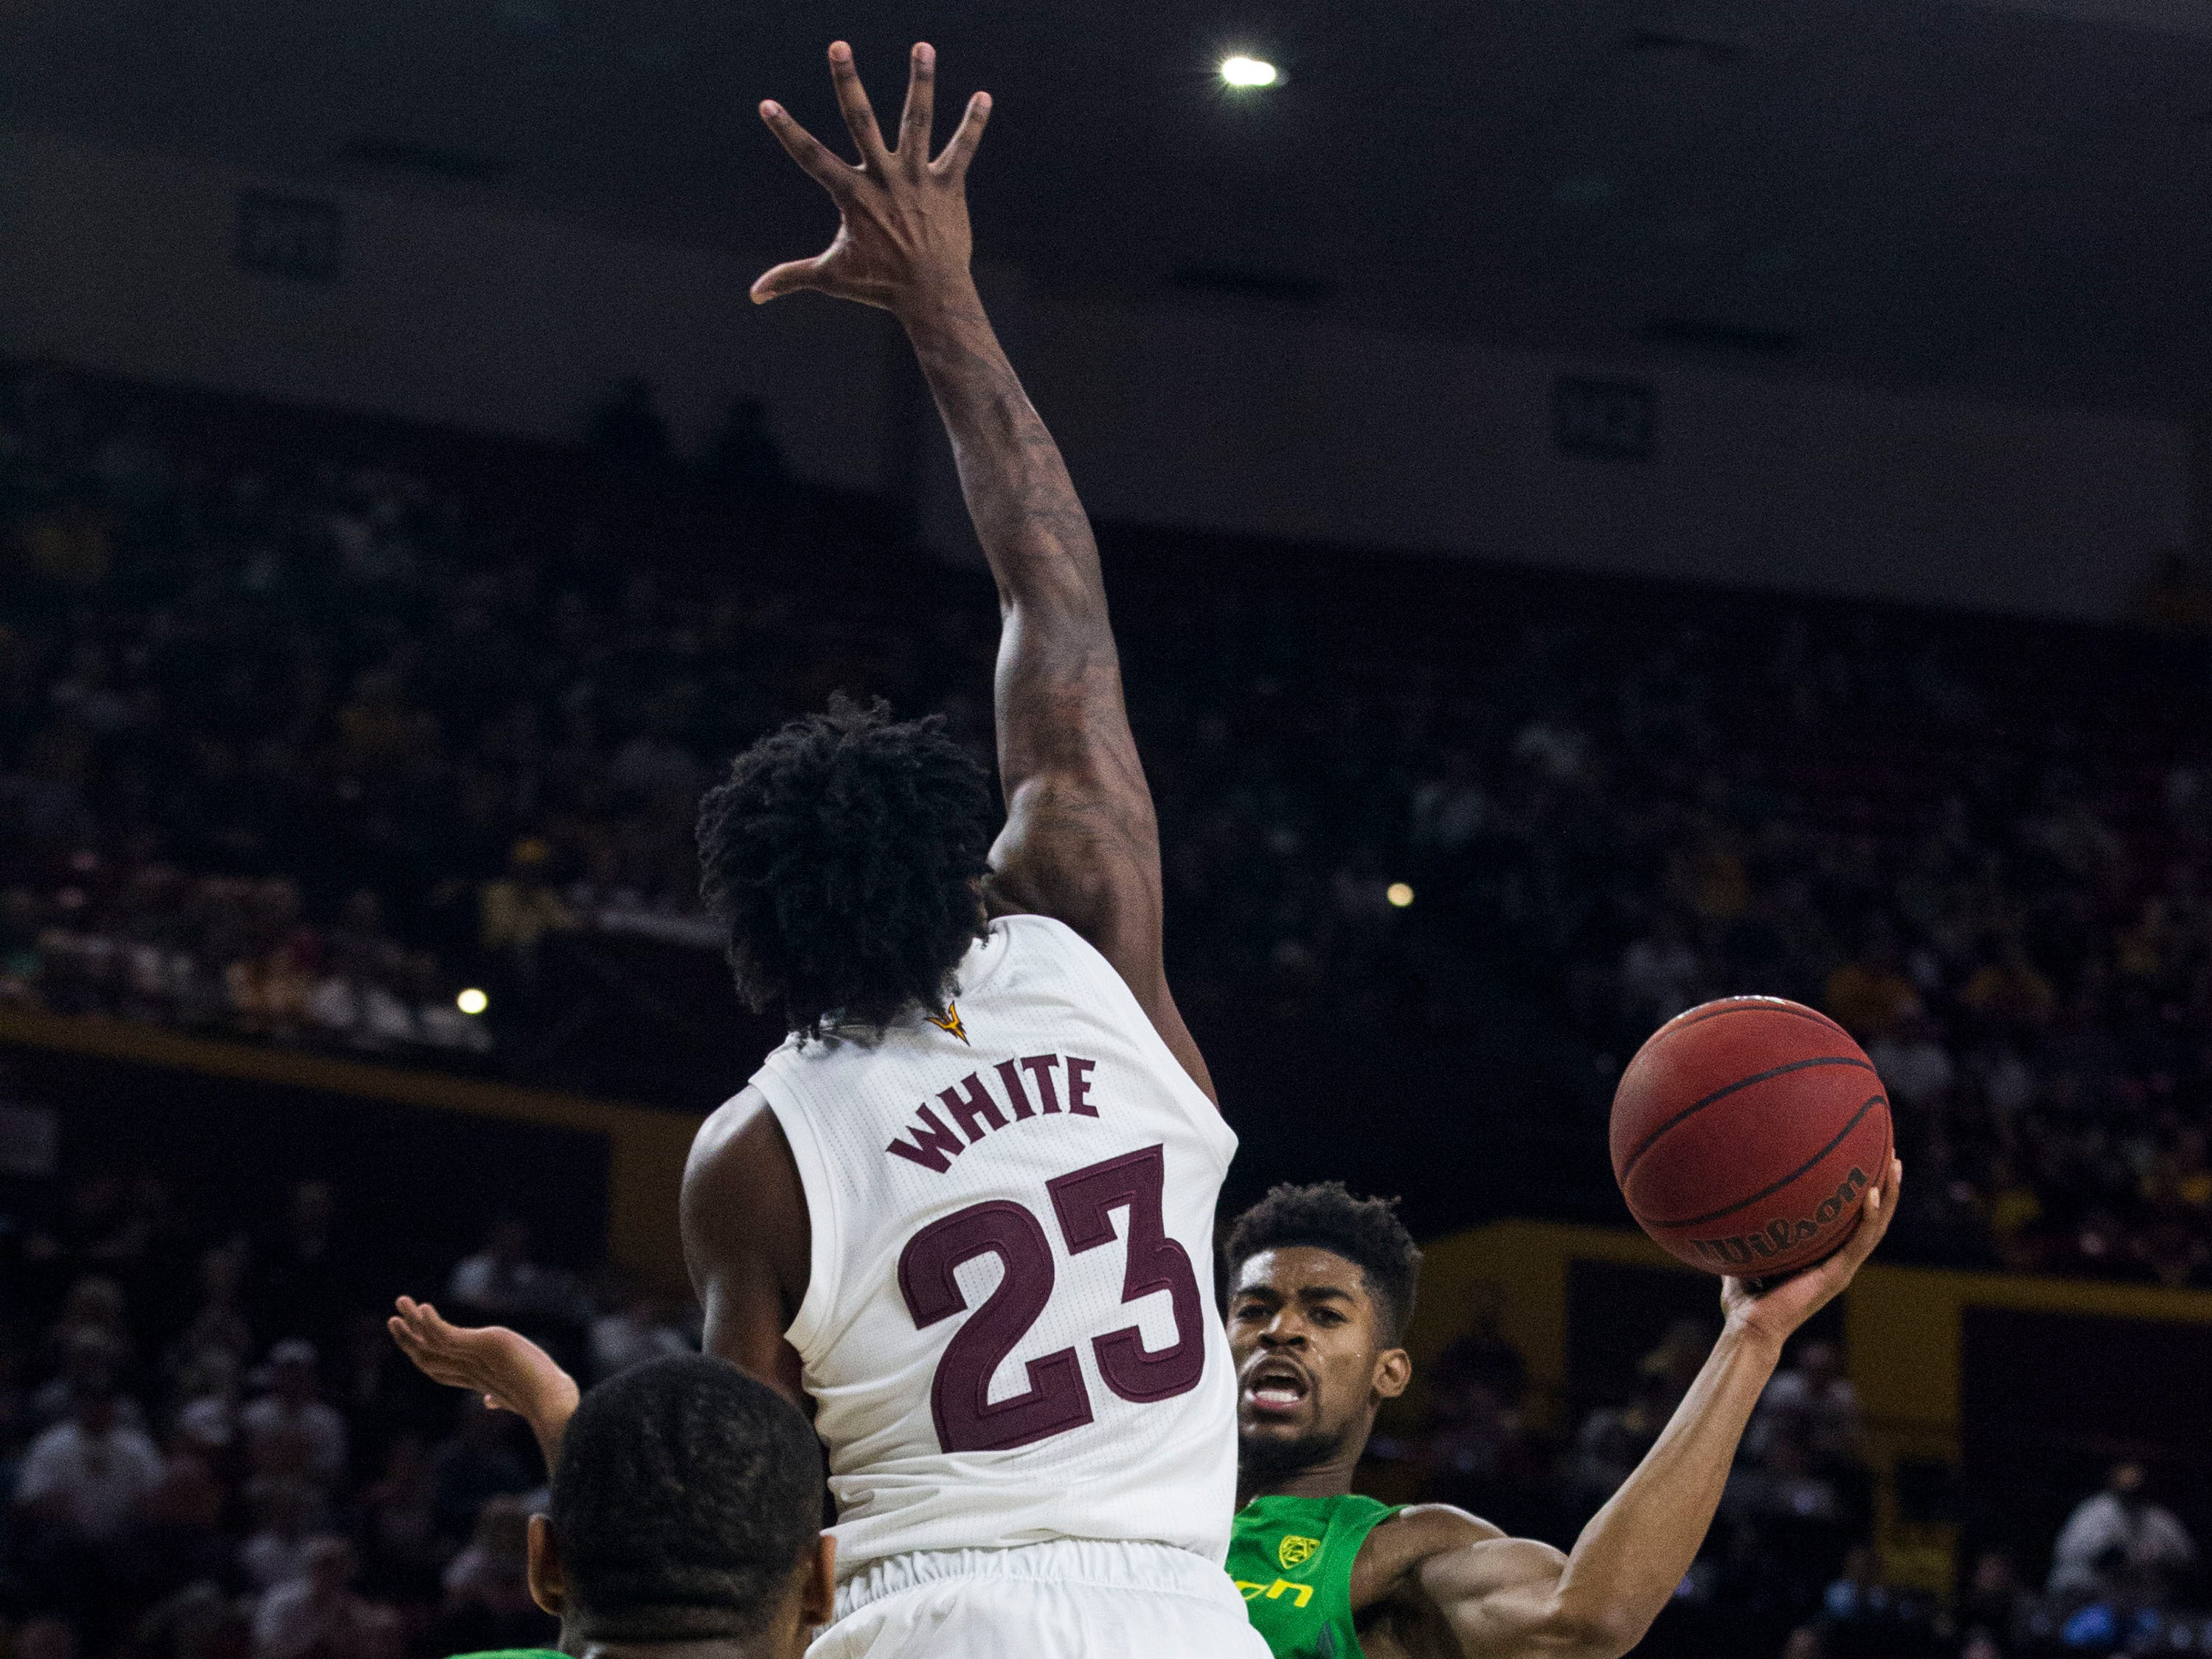 Oregon's Victor Bailey Jr. (10) looks to pass around Arizona State's Romello White (23) to Francis Okoro (33) during the first half, Saturday, Jan. 19, 2019, in Tempe, Ariz. (AP Photo/Darryl Webb)